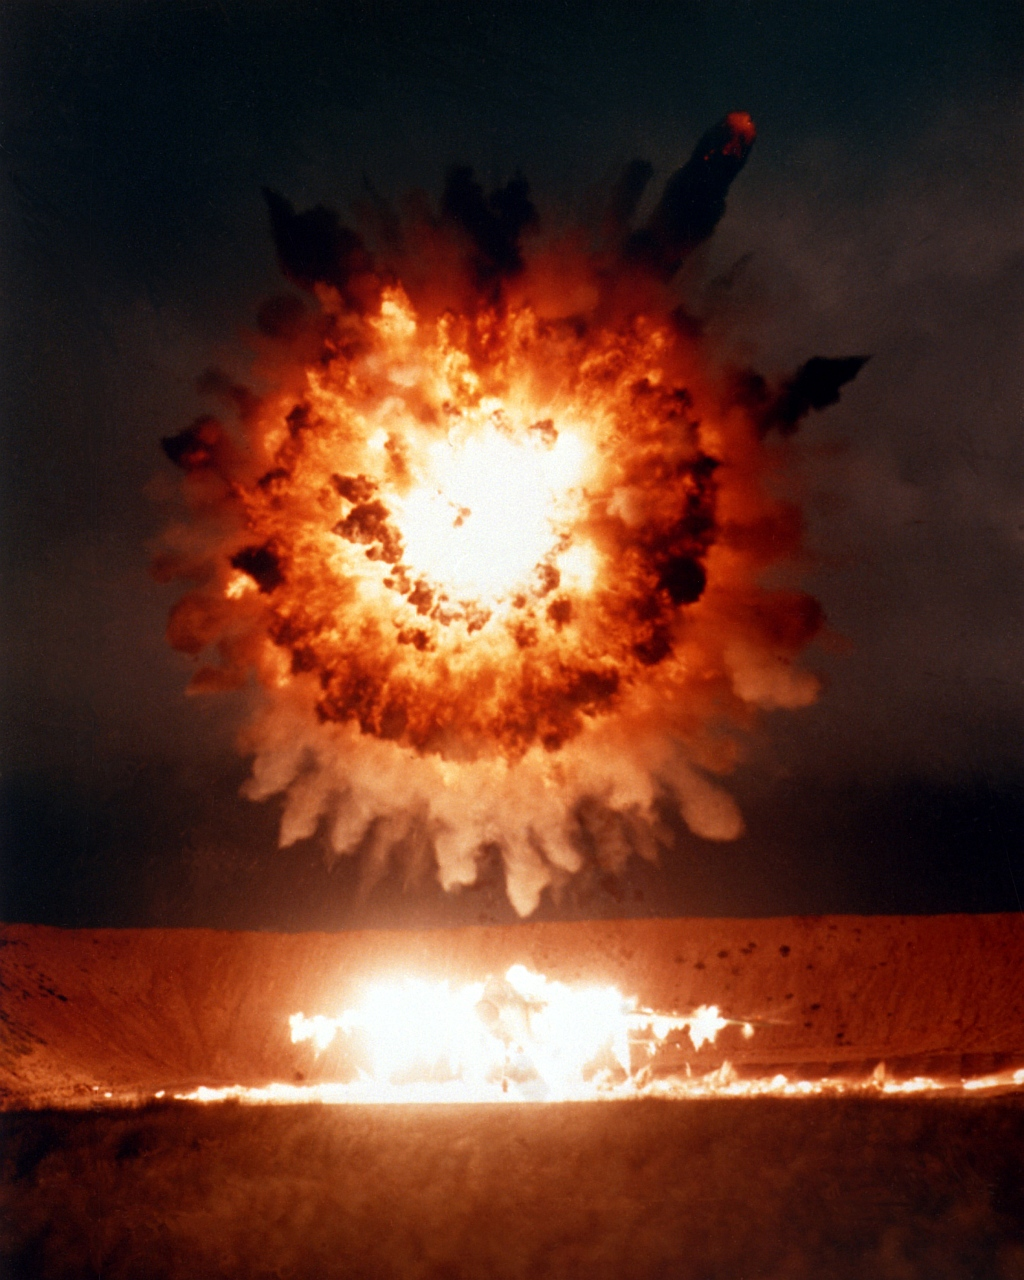 6. The BGM-109 Tomahawk Cruise Missile's 1,000-Pound Conventional Warhead Explodes Over the Revetted Aircraft, April 1, 1986, San Clemente Island, State of California, USA. Photo Credit: Defense Visual Information Center (DVIC, http://www.DoDMedia.osd.mil, DN-SC-86-06115) and United States Navy (USN, http://www.navy.mil), United States Department of Defense (DoD, http://www.DefenseLink.mil or http://www.dod.gov), Government of the United States of America (USA).